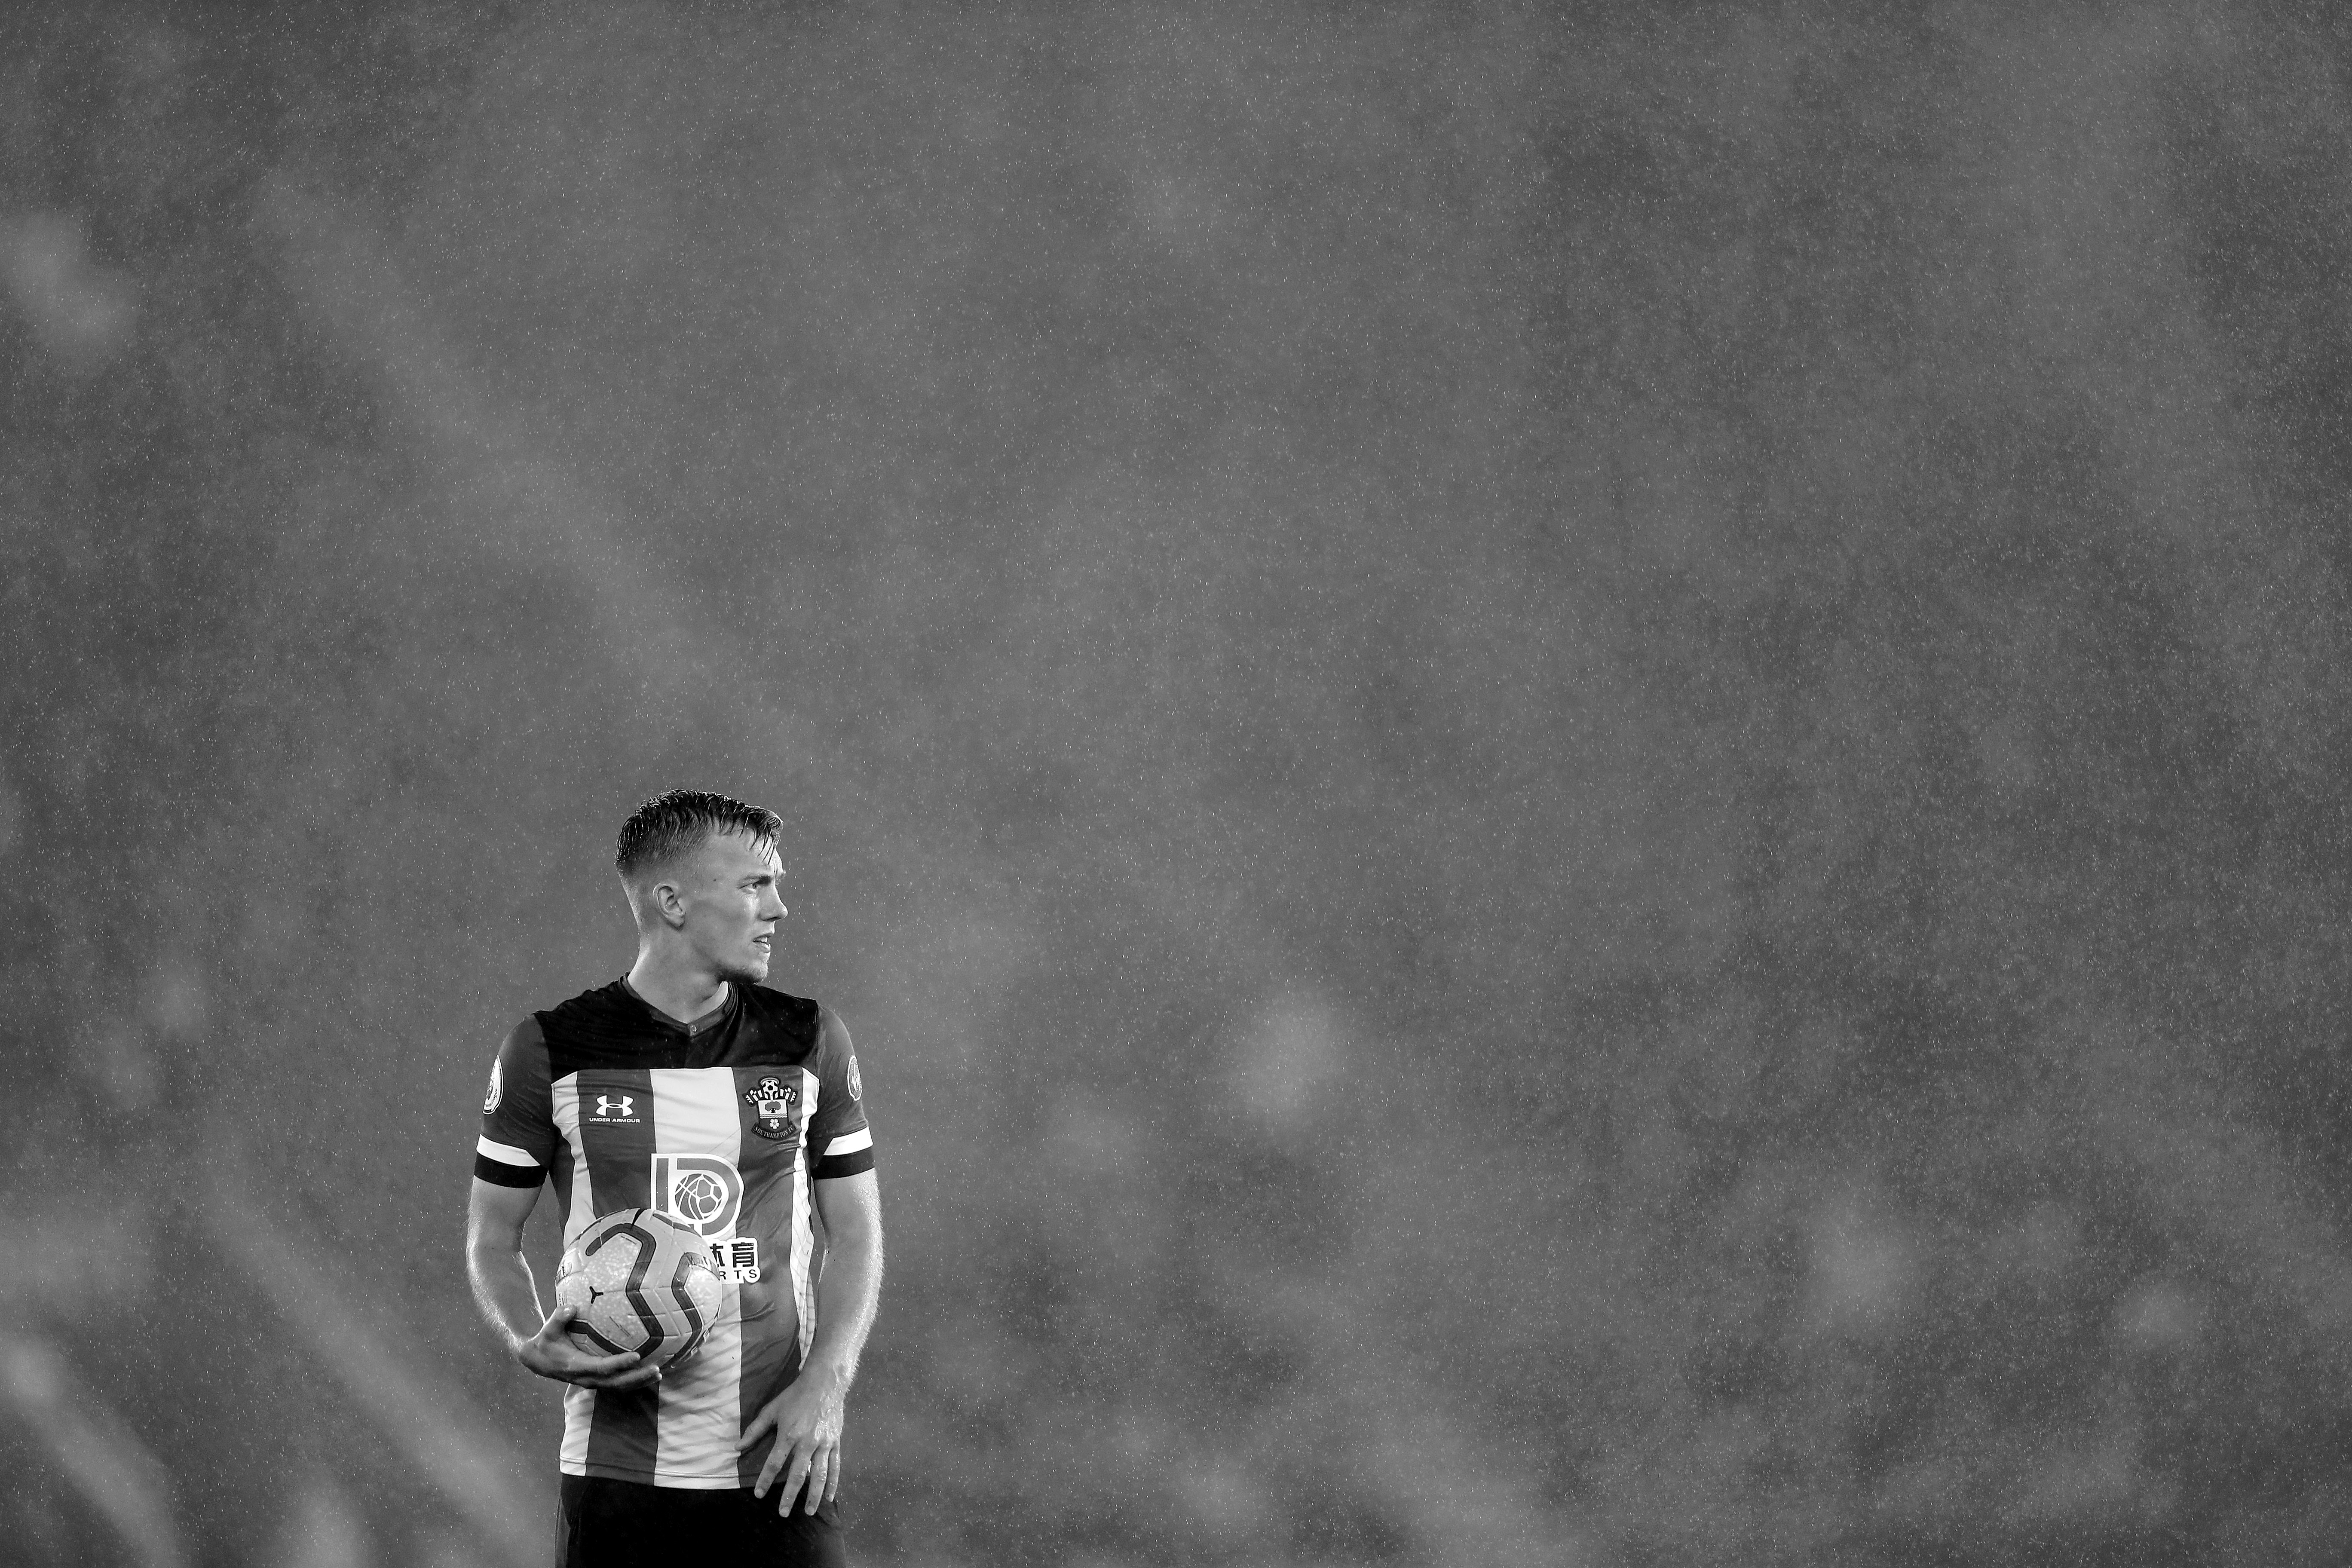 A forlorn James Ward-Prowse as Southampton go down 9-0 at home to Leicester City in the Premier League